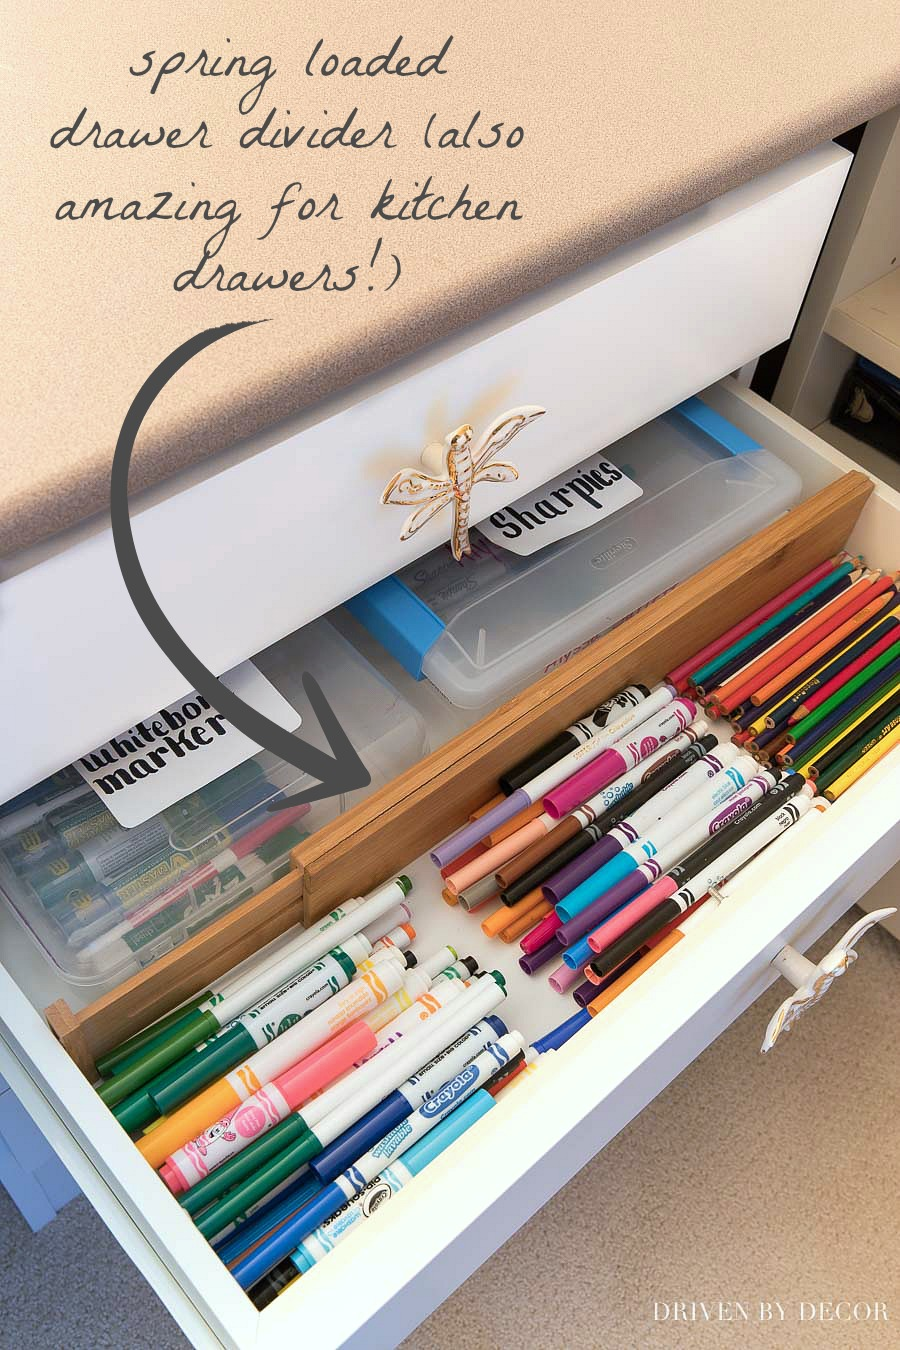 Spring loaded drawer dividers are perfect for drawers in your kitchen, bedroom, craft room, or just about anywhere!!! Such a great way to organize!